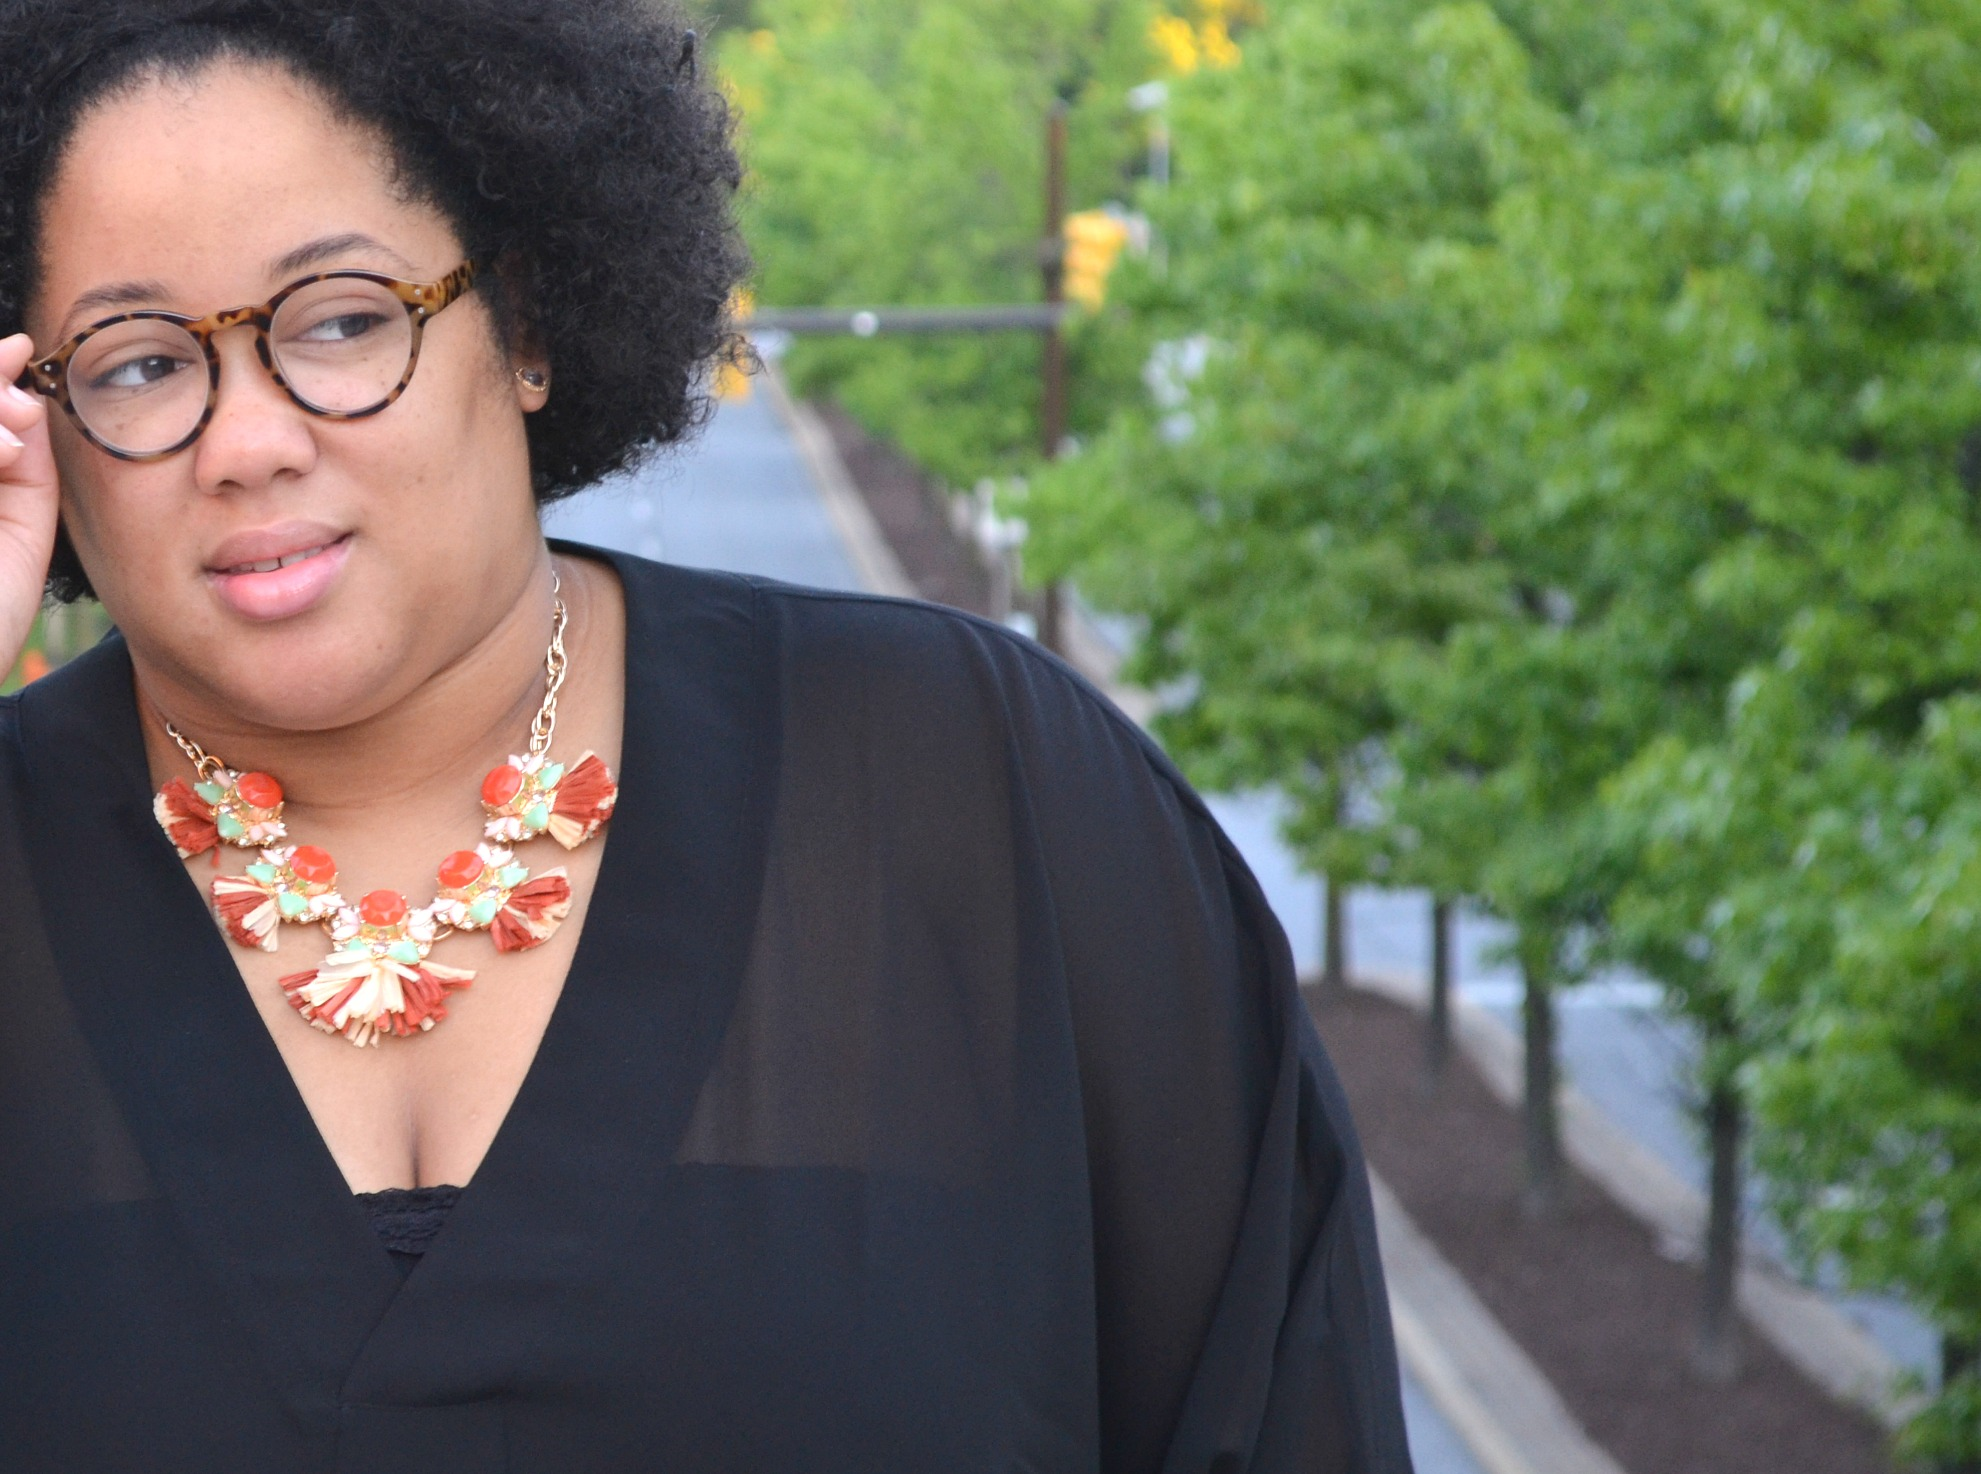 Statement Necklace Nordstrom Rack